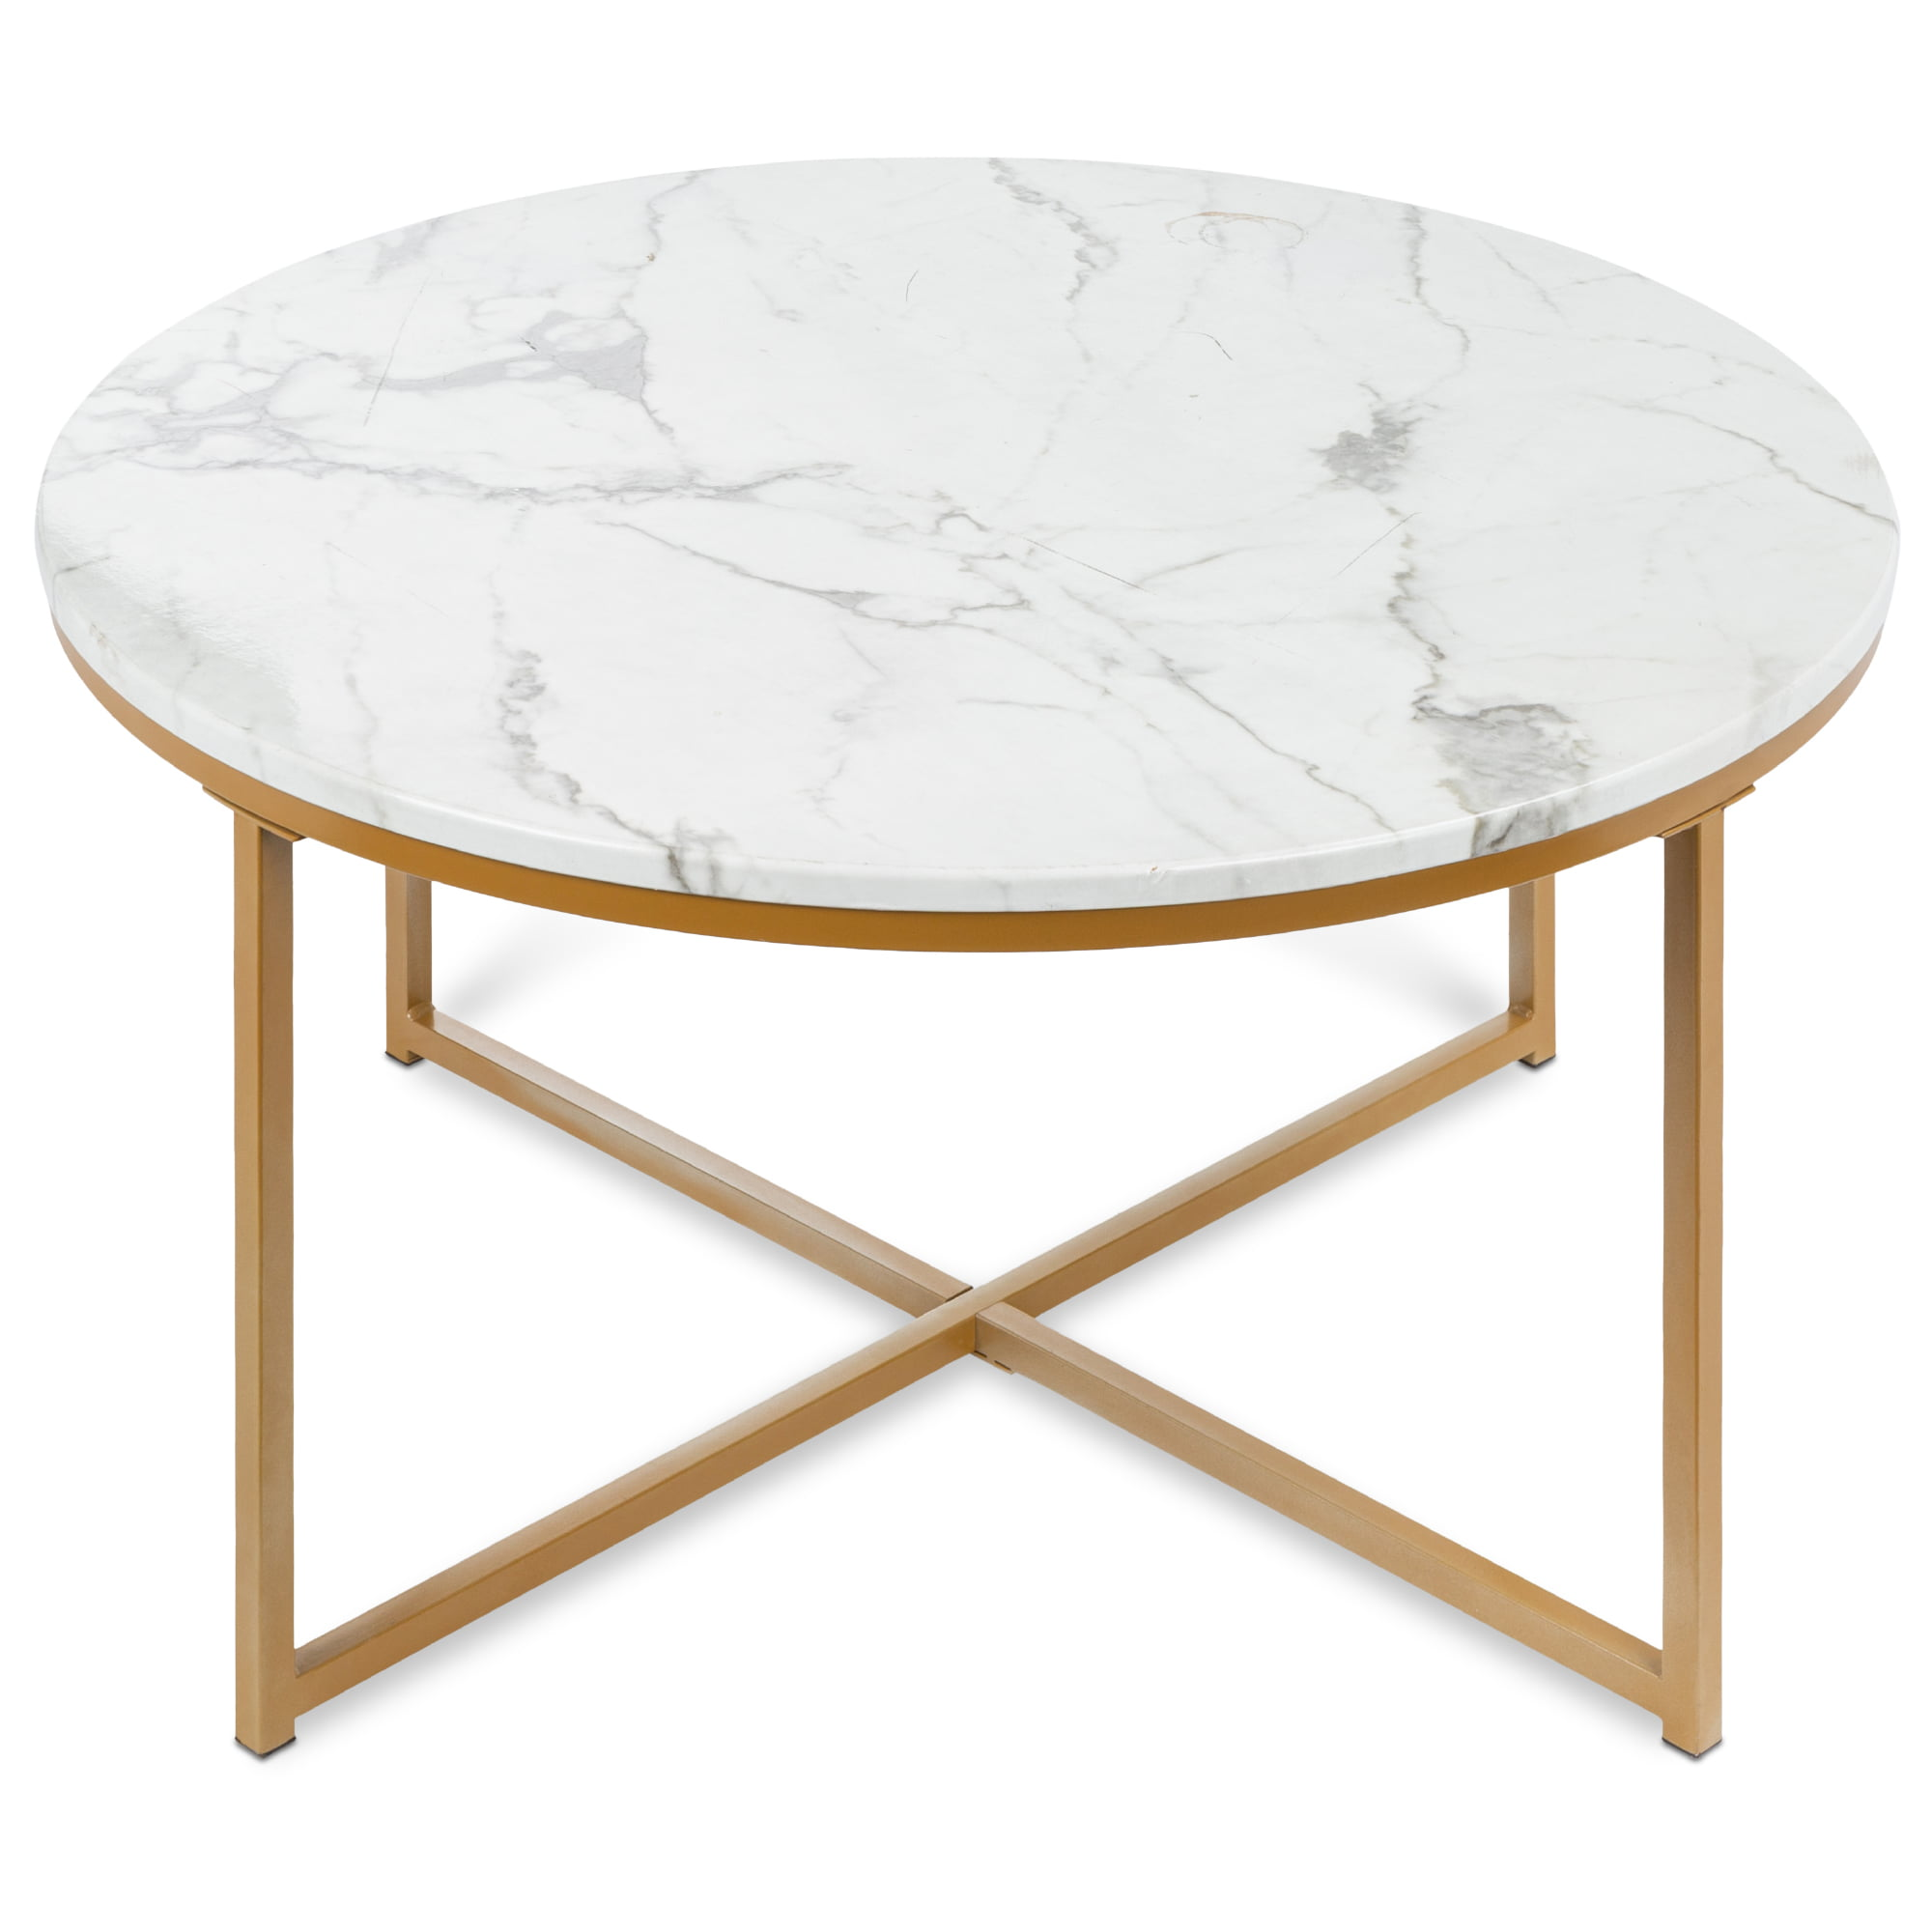 Picture of: Round Coffee Table 18×22 Inch White Desk Side Table Coffee Table Mid Century Modern Rustic Wooden Table With 3 Legs Pillars White Night Stands For Bedrooms Bedside Table Home Kitchen Home